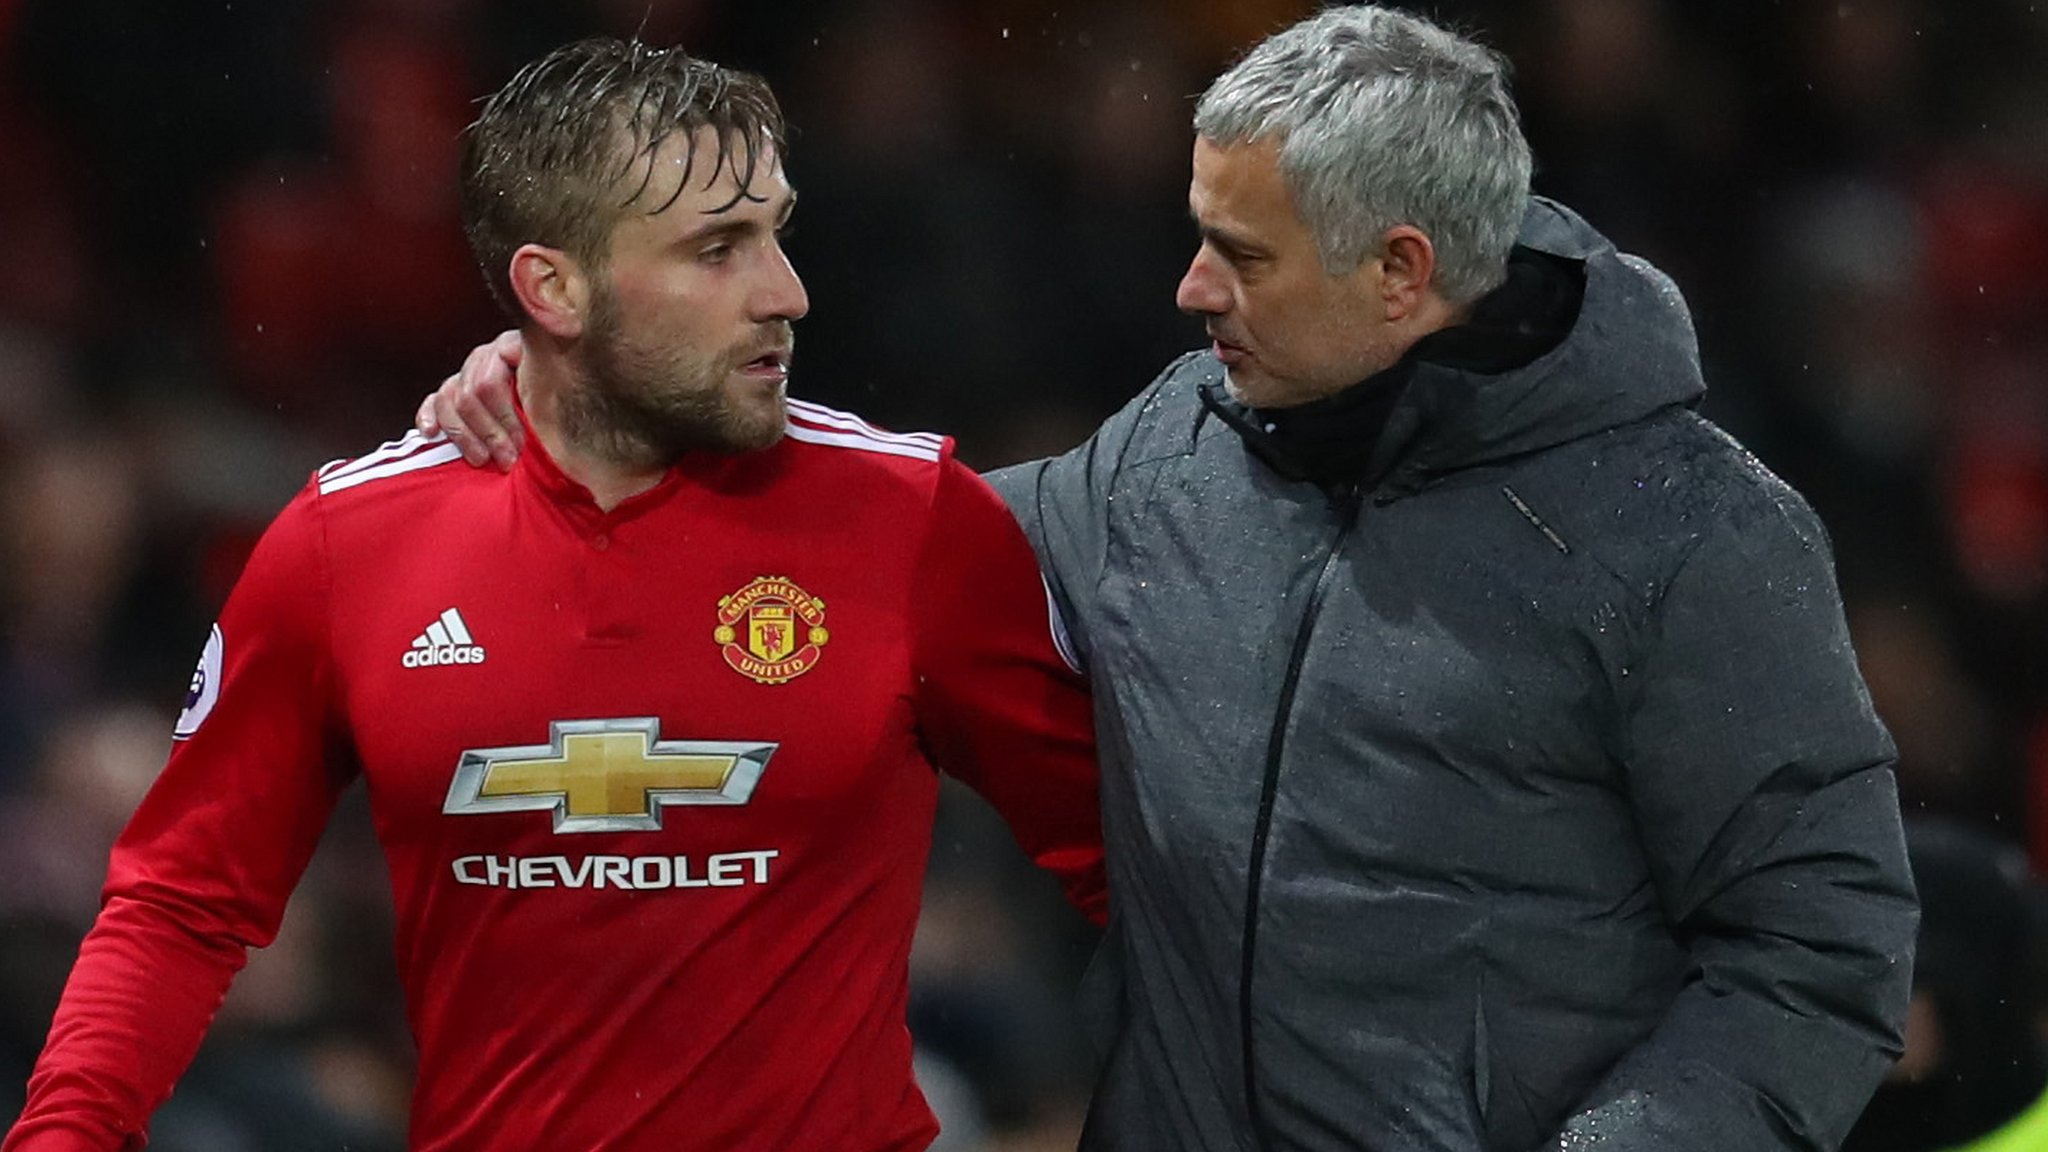 Shaw set to leave Man Utd in summer after more Mourinho criticism - https://t.co/cIr3lObg6b https://t.co/LzgfaGPHV8